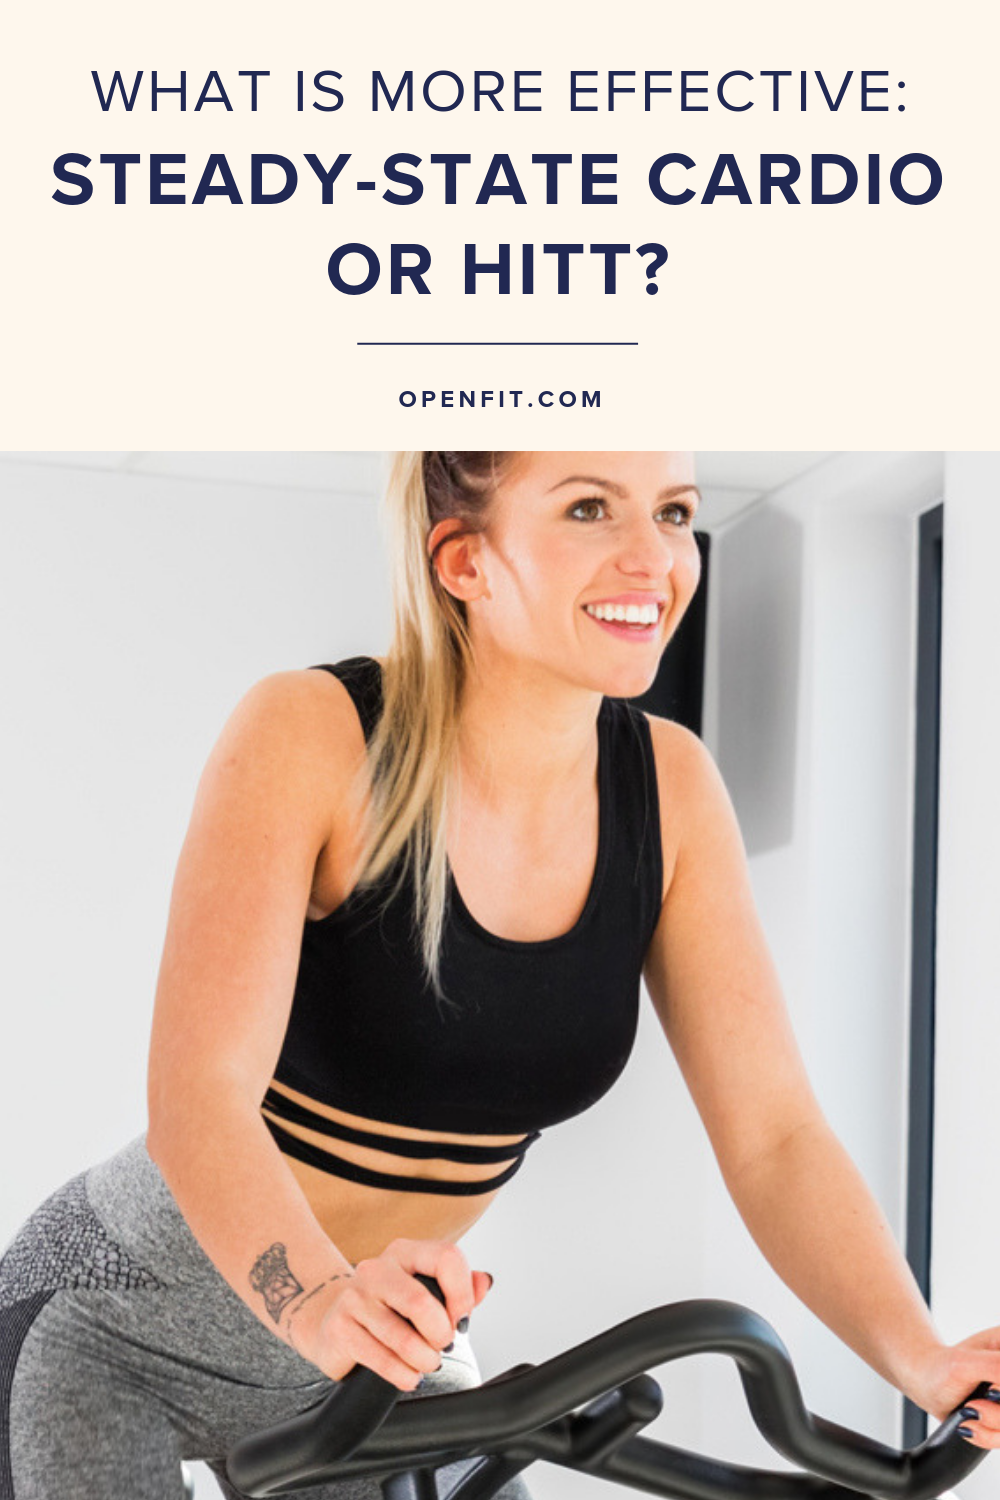 hiit or liss